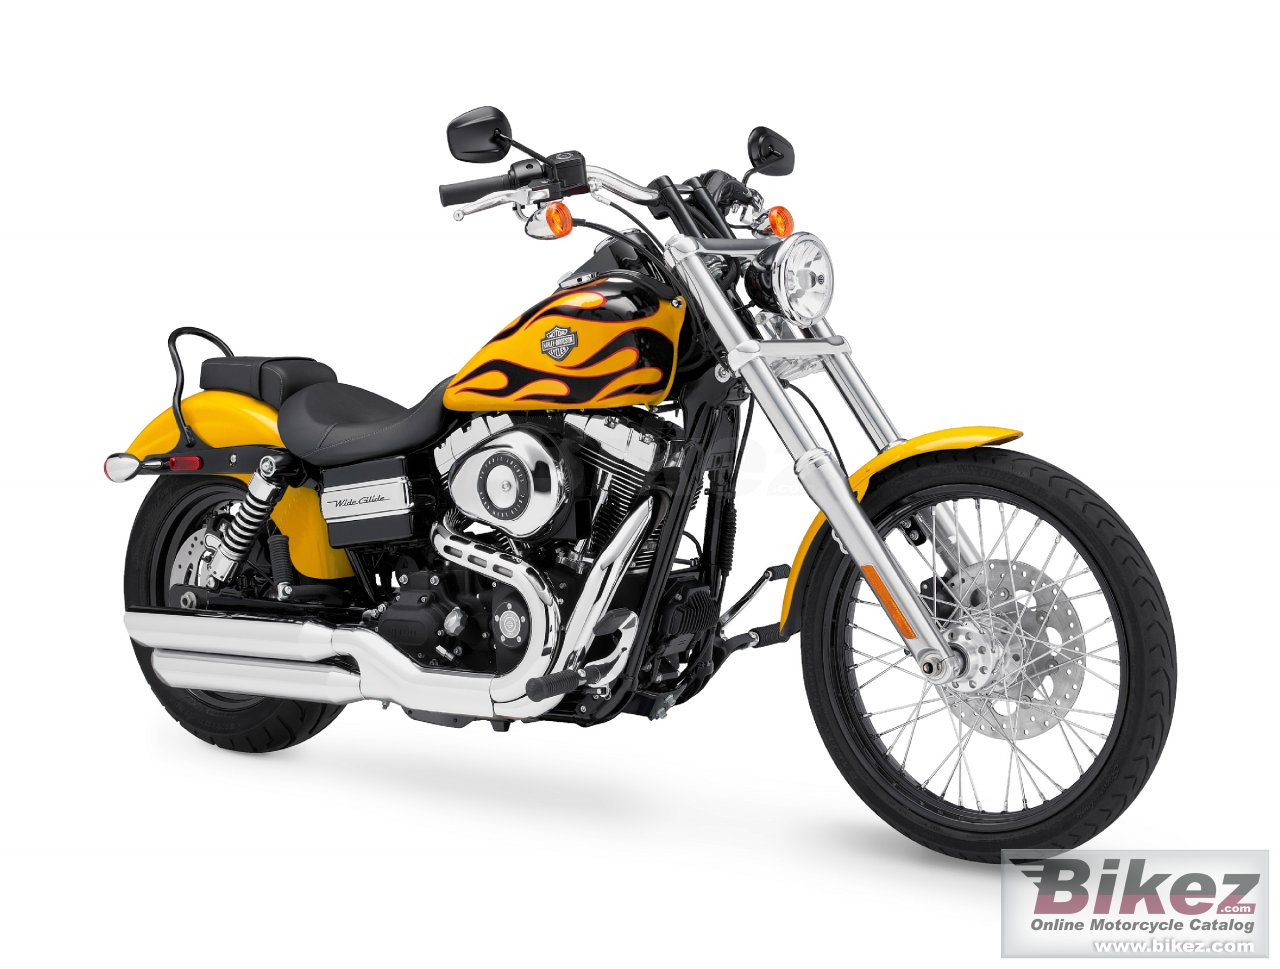 Big Harley-Davidson fxdwg dyna wide glide picture and wallpaper from Bikez.com